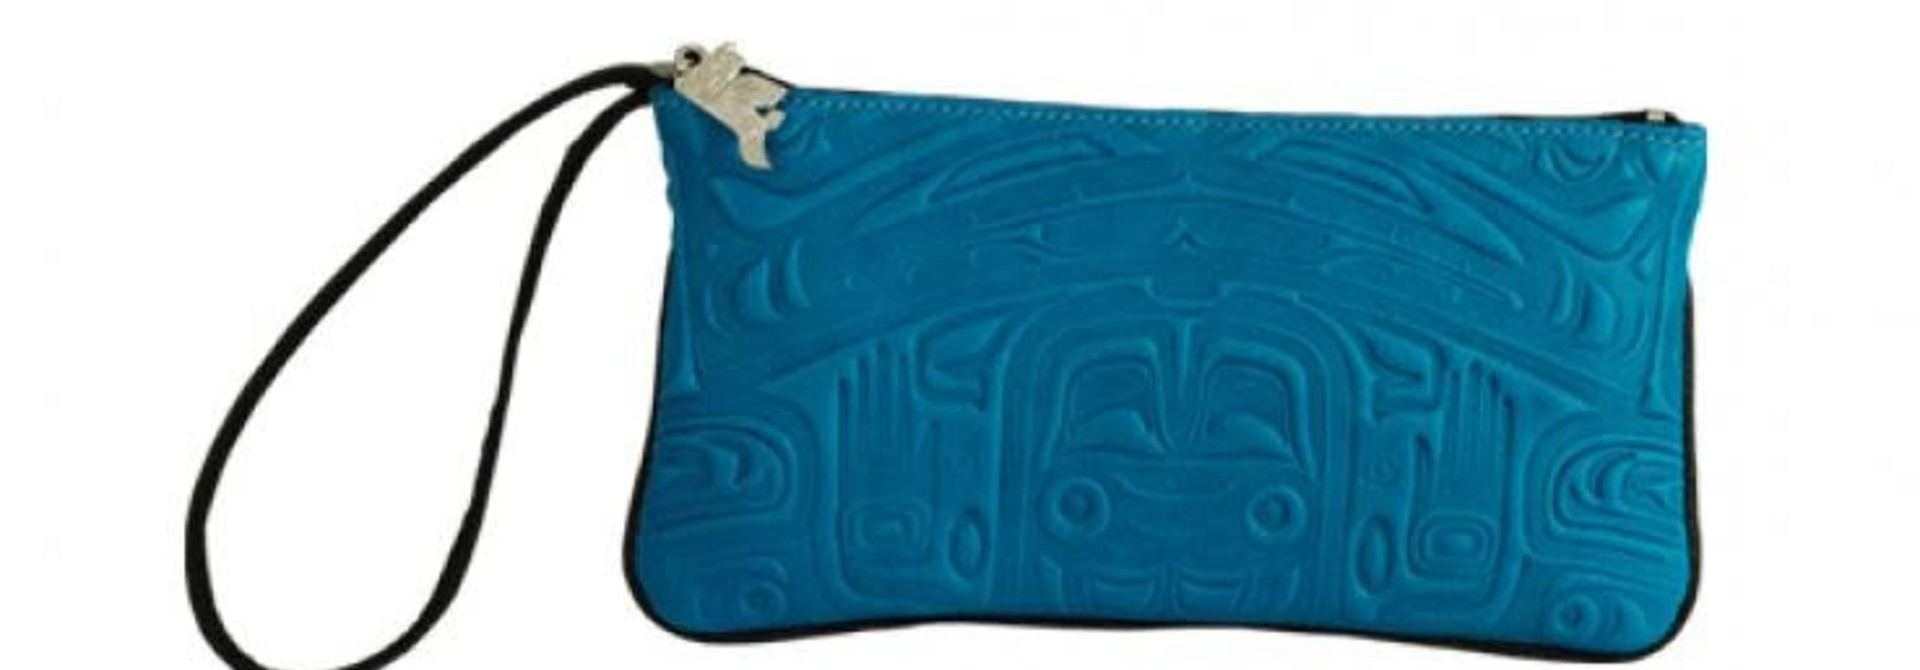 Leather Wristlet in Bearbox Design - Turquoise